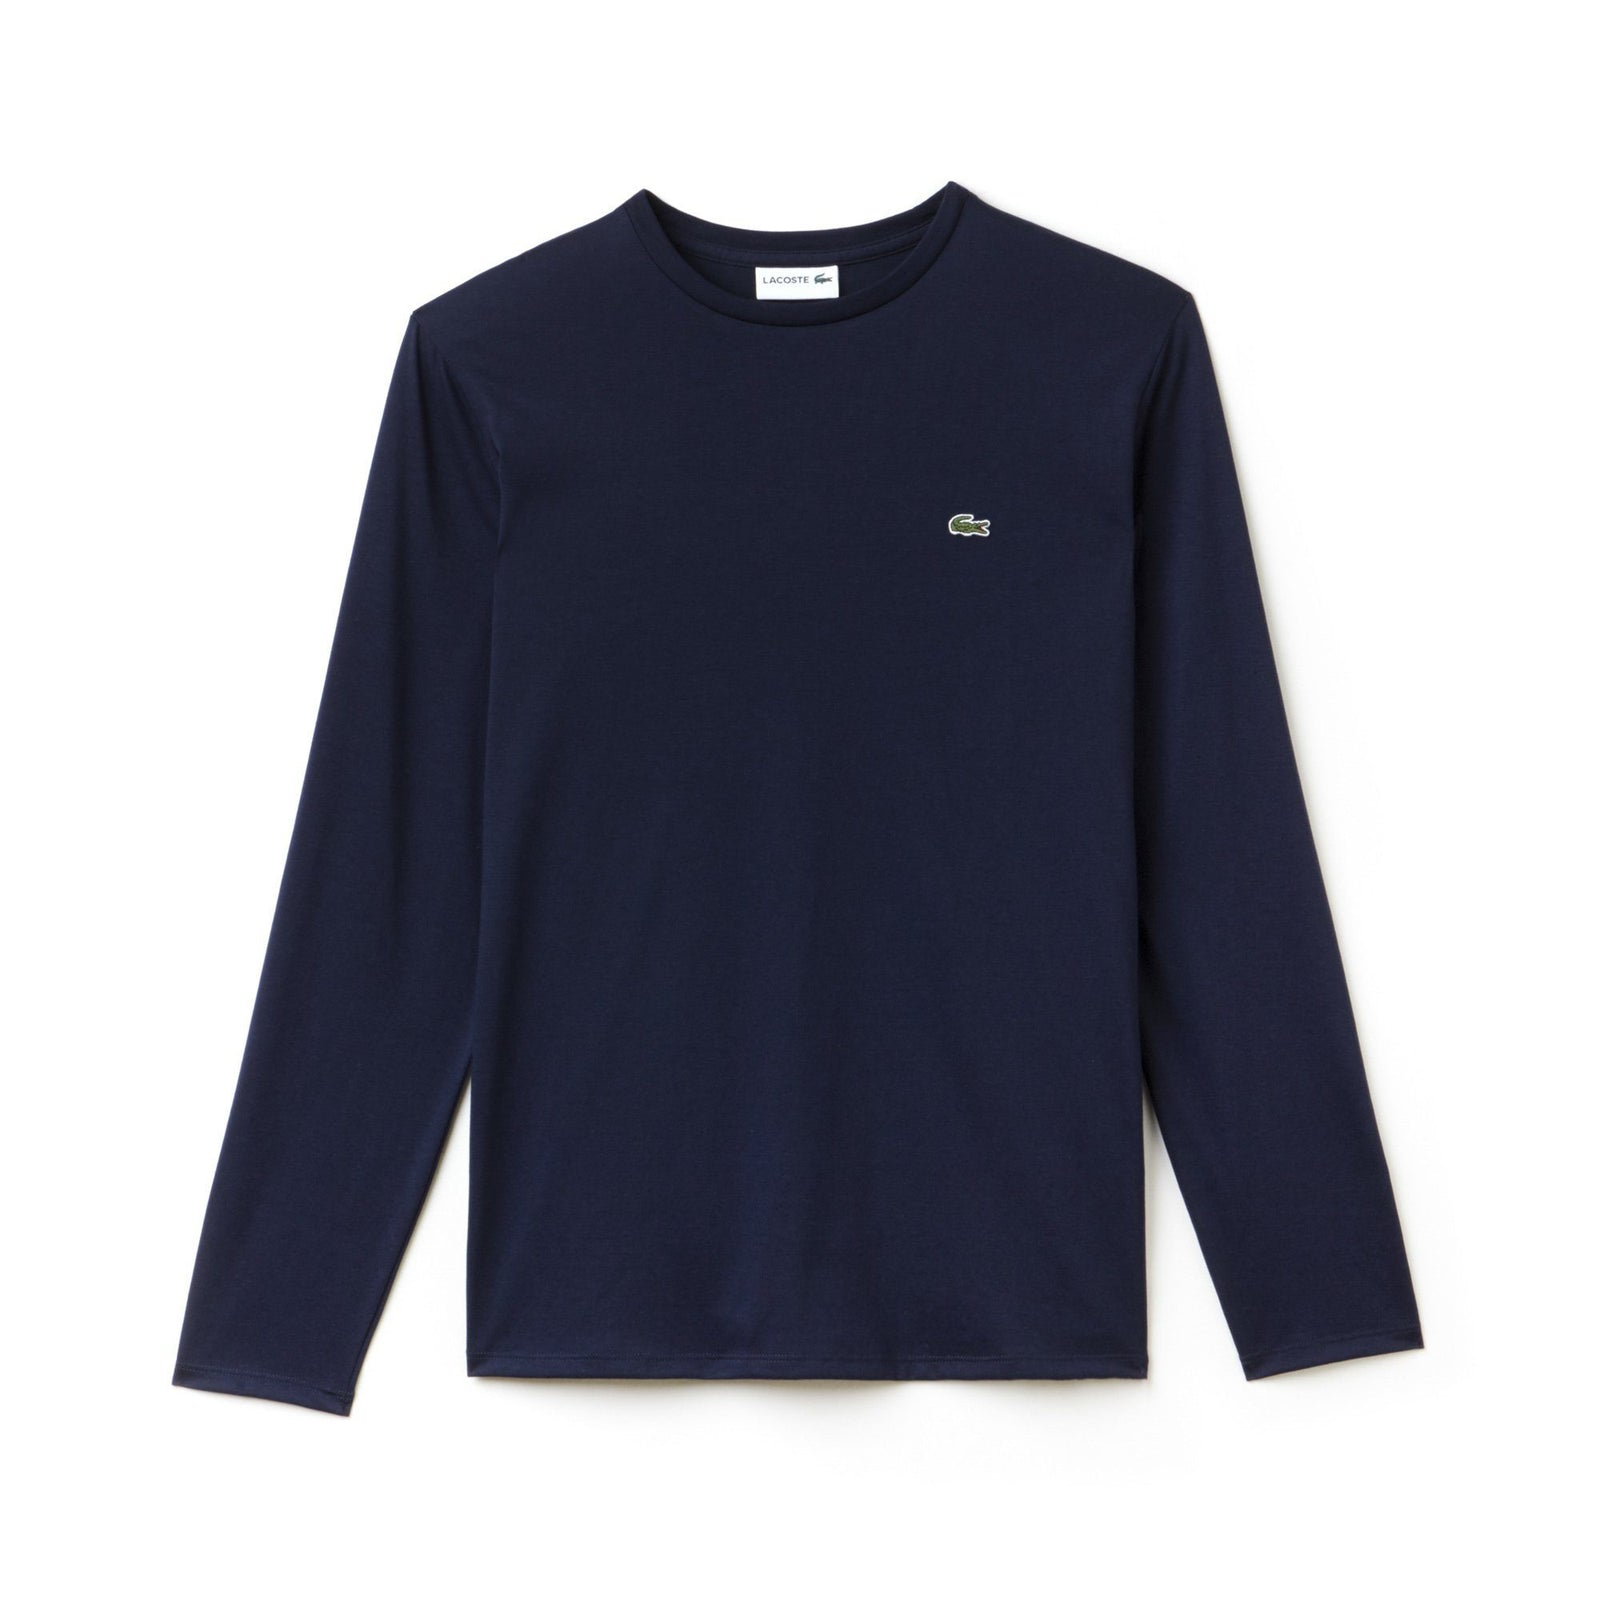 Lacoste TH6712-166 Crew Neck Pima Cotton Long Sleeved Tee